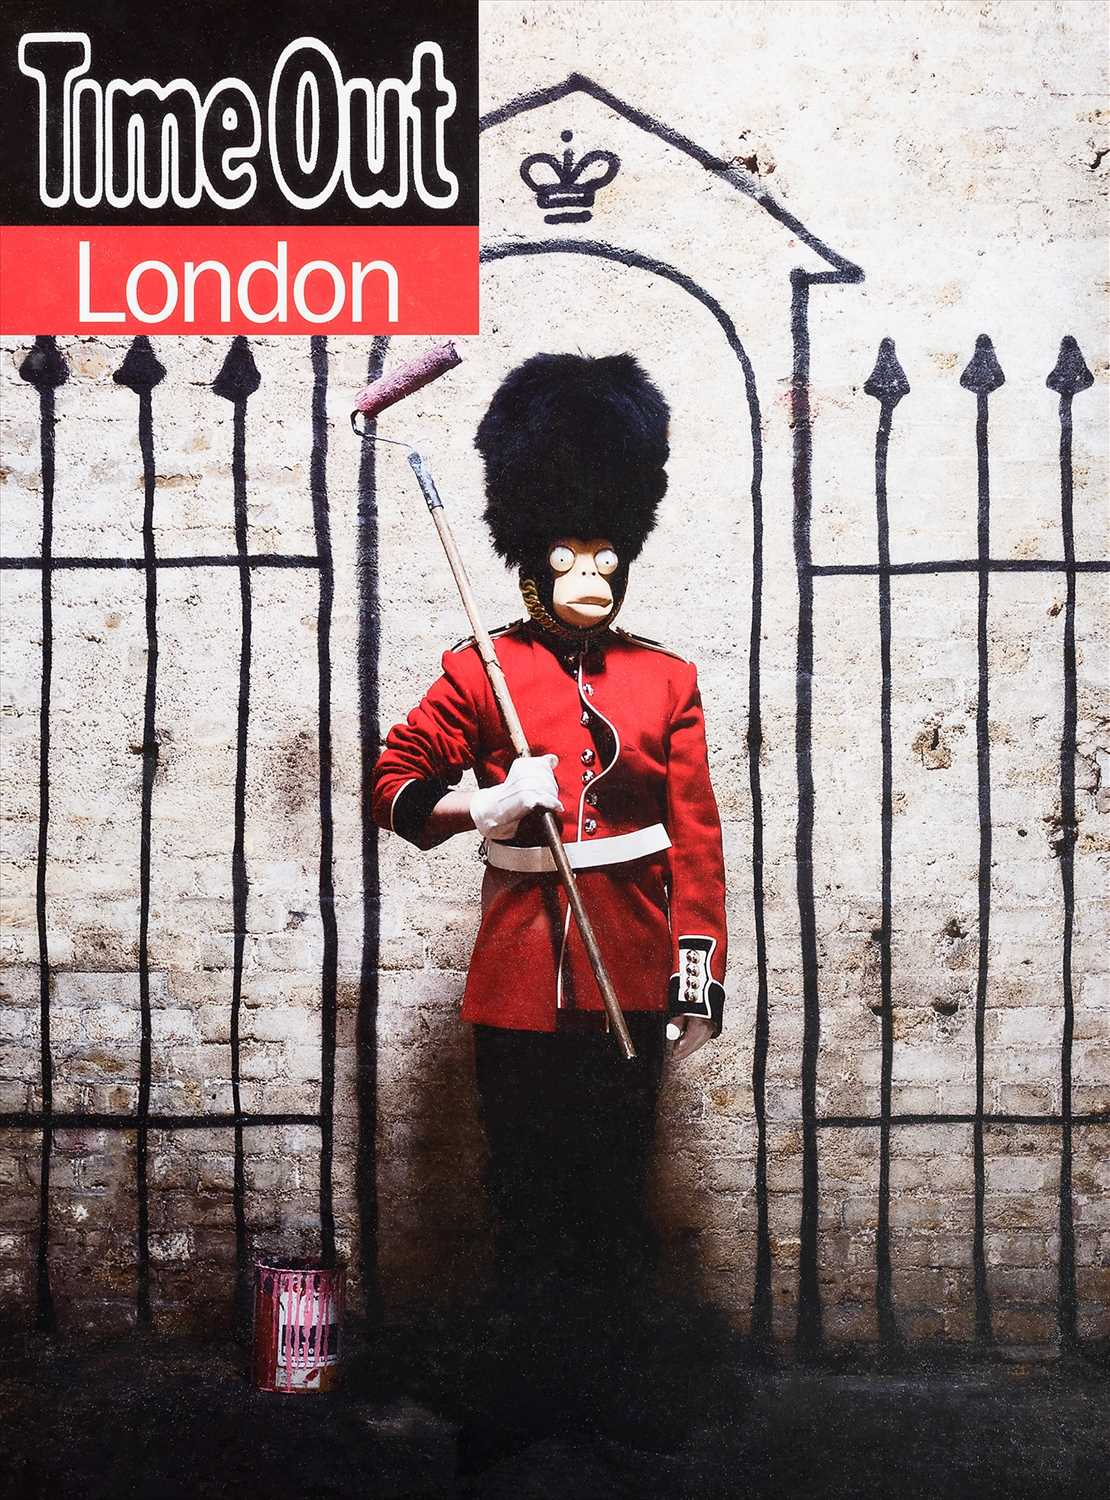 Lot 95-Banksy (British 1974-), 'Time Out London', 2010